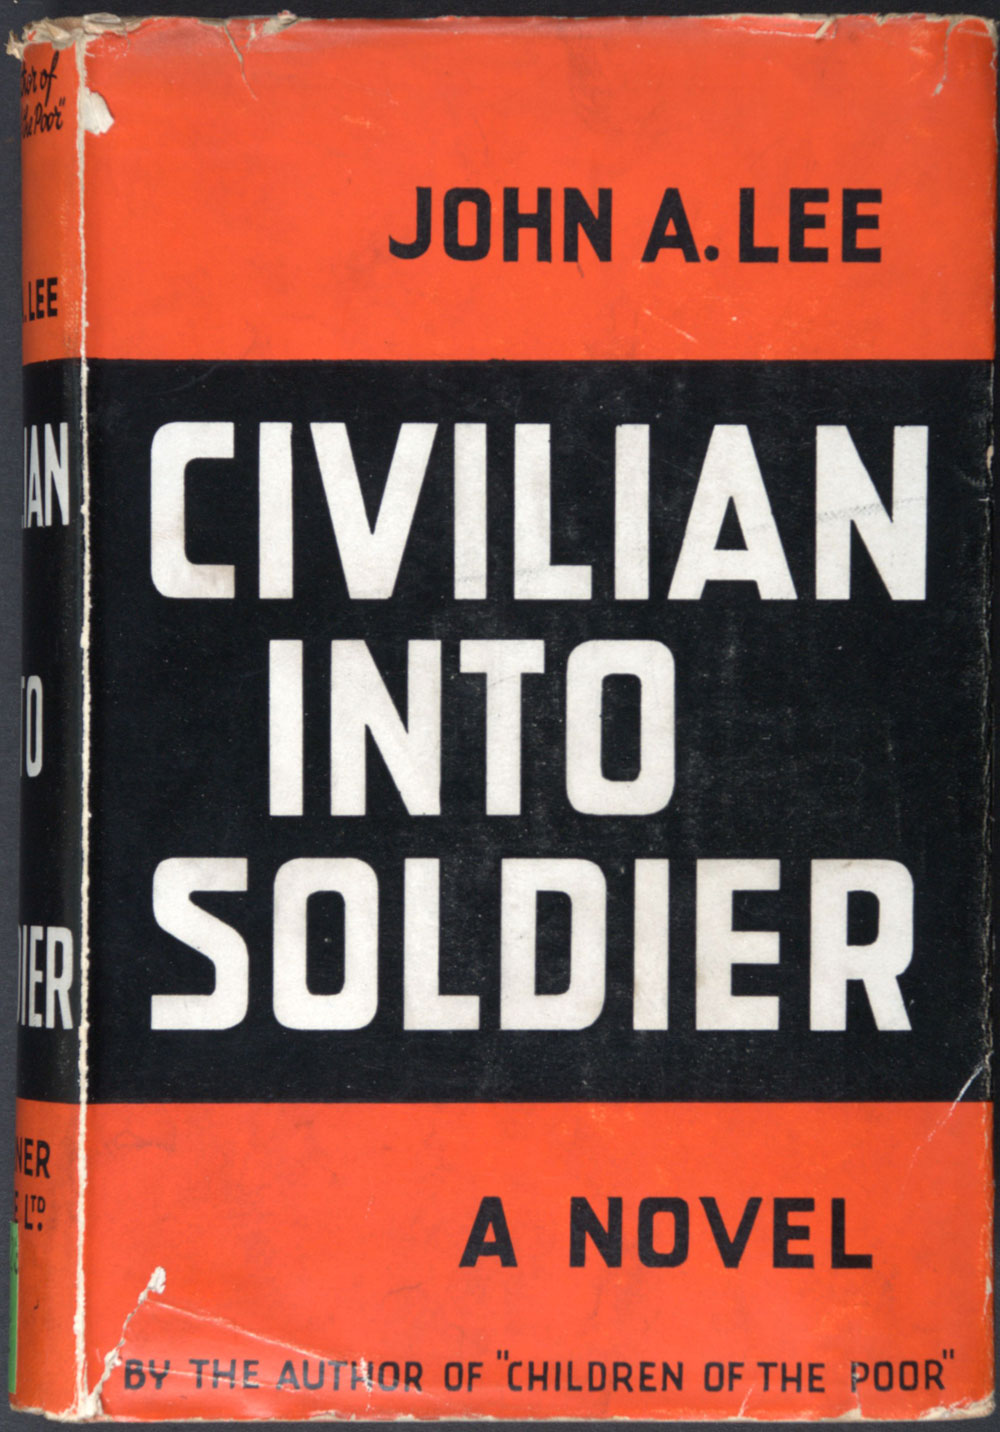 John A. Lee. <em>Civilian into soldier.</em> London: T. Werner Laurie Ltd., 1937.